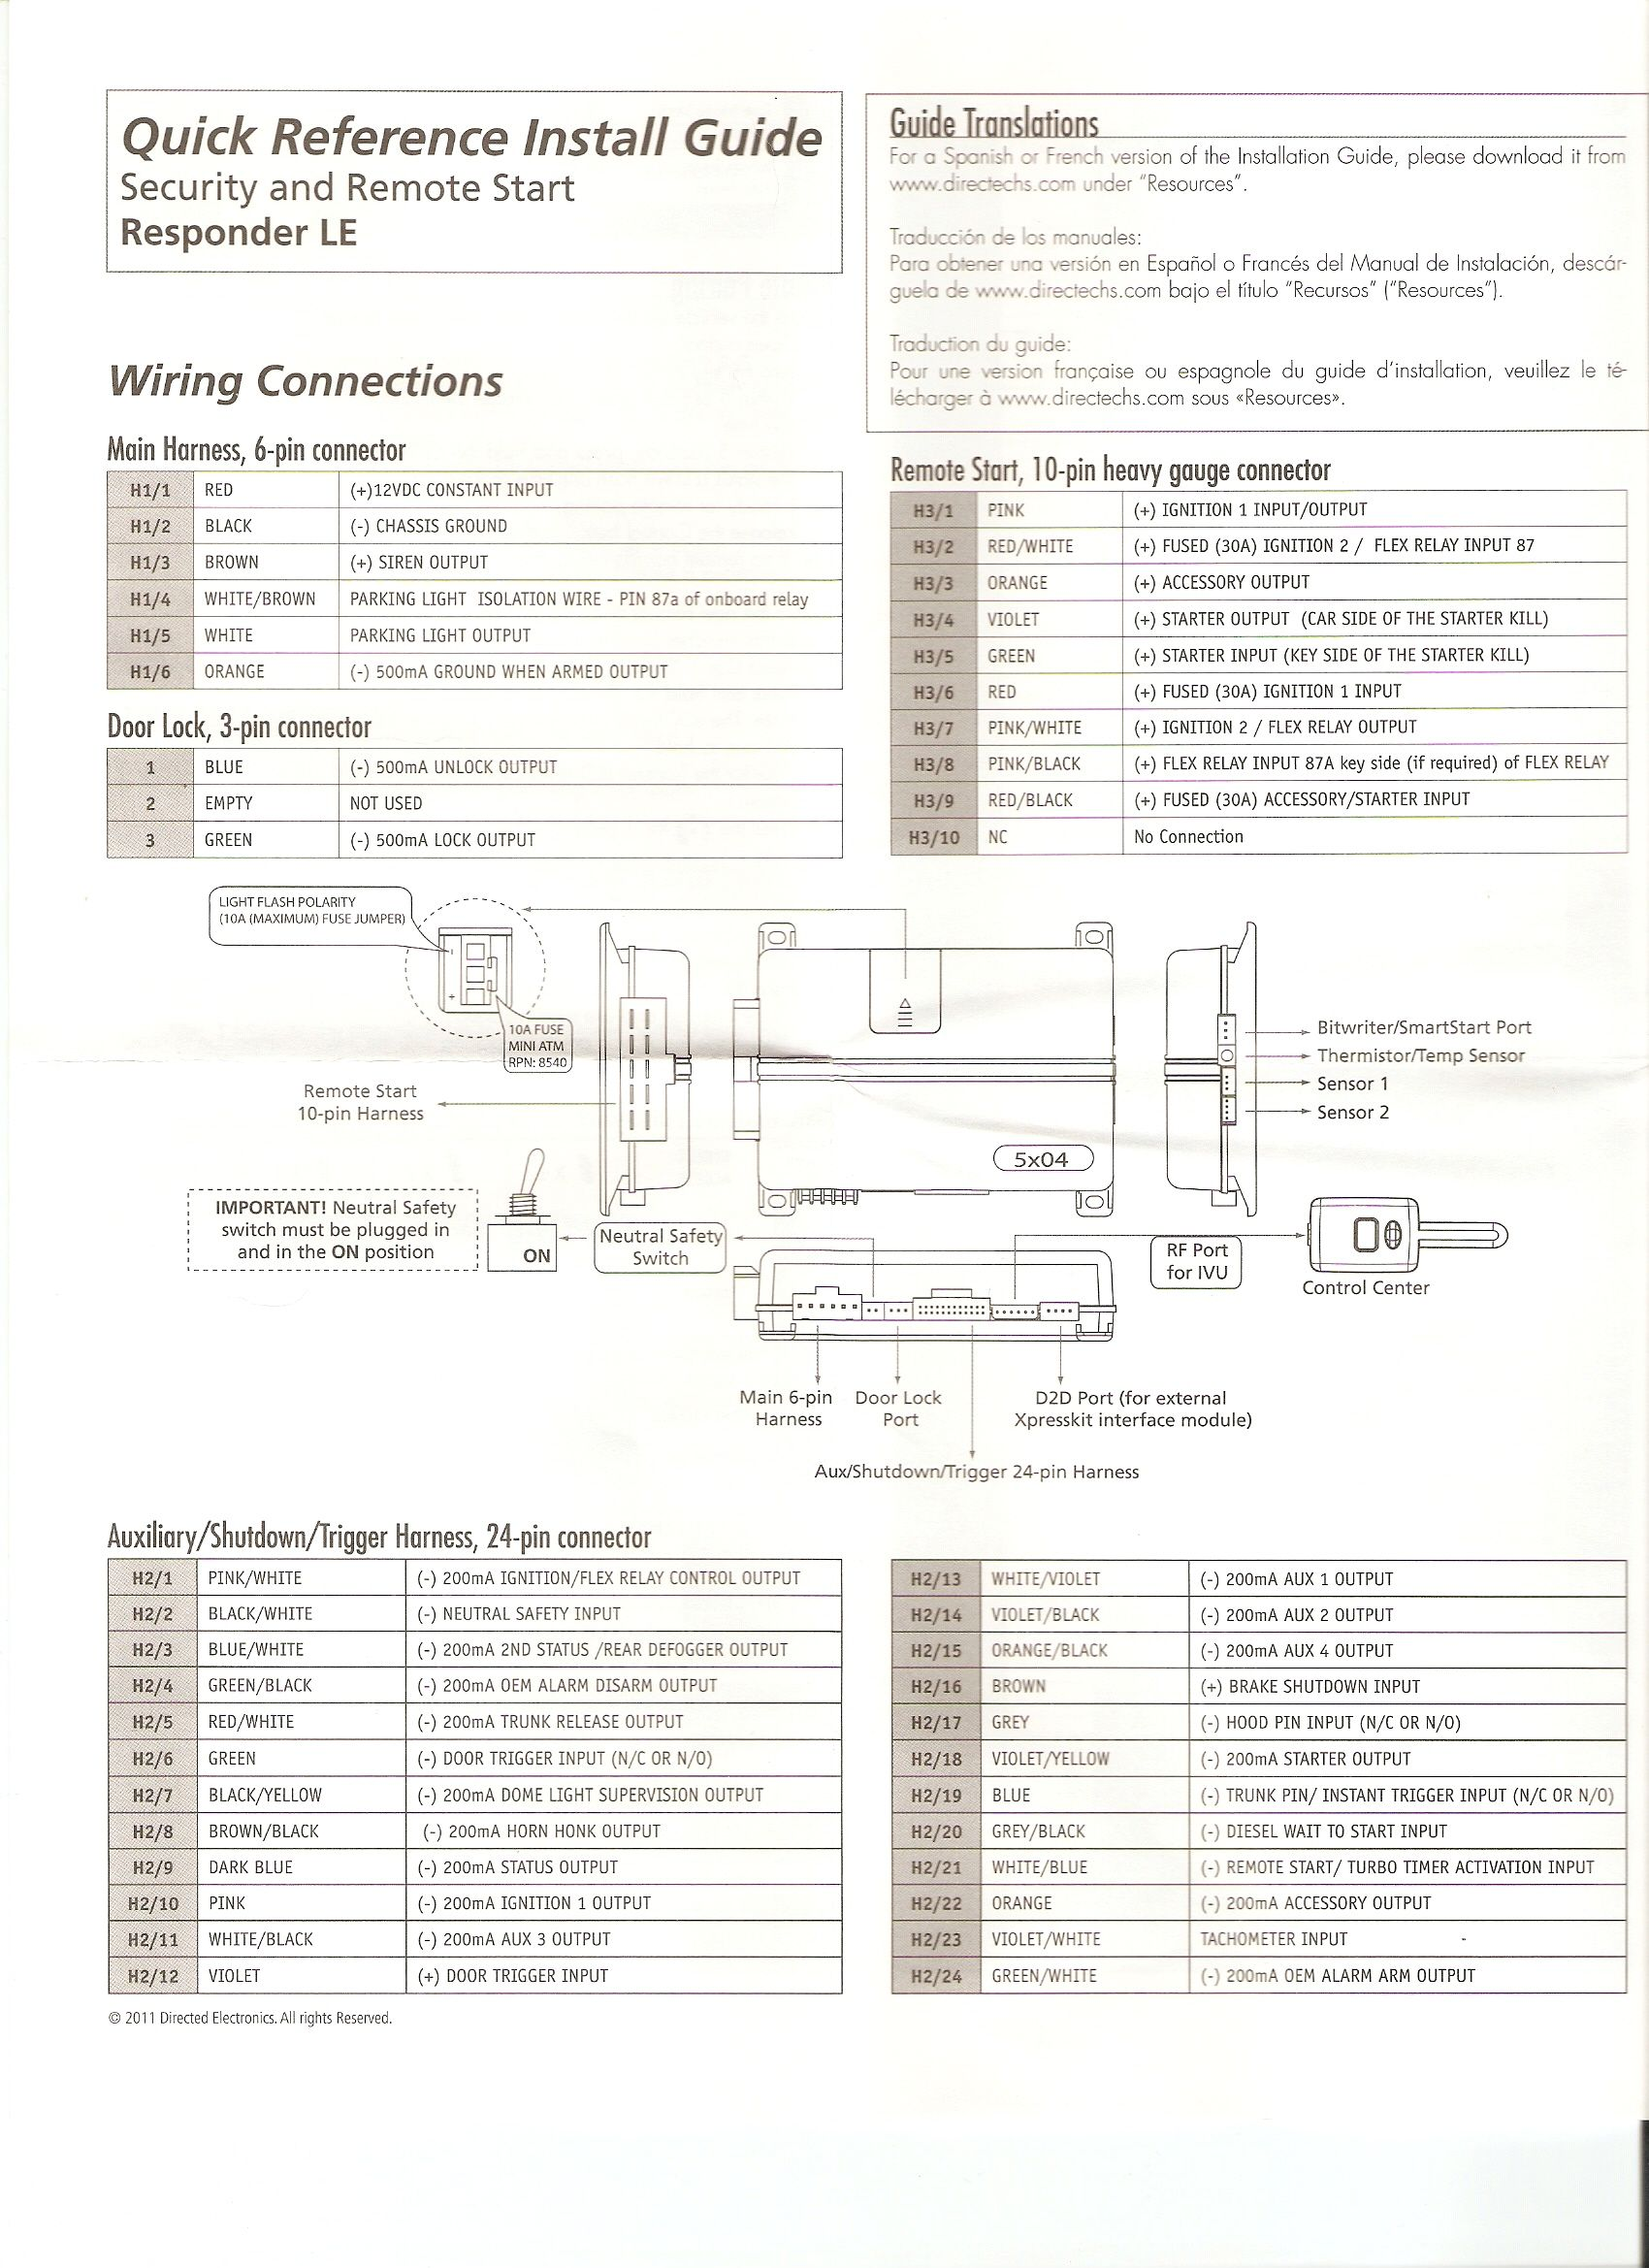 wiring diagram remote start for 1995 audi s6 wiring diagram blog 2015 Mazda 3 Stereo Wiring Diagram remote starter wiring diagram for 2015 mazda3 remote free wiring, wiring diagram 2015 mazda 3 stereo wiring diagram